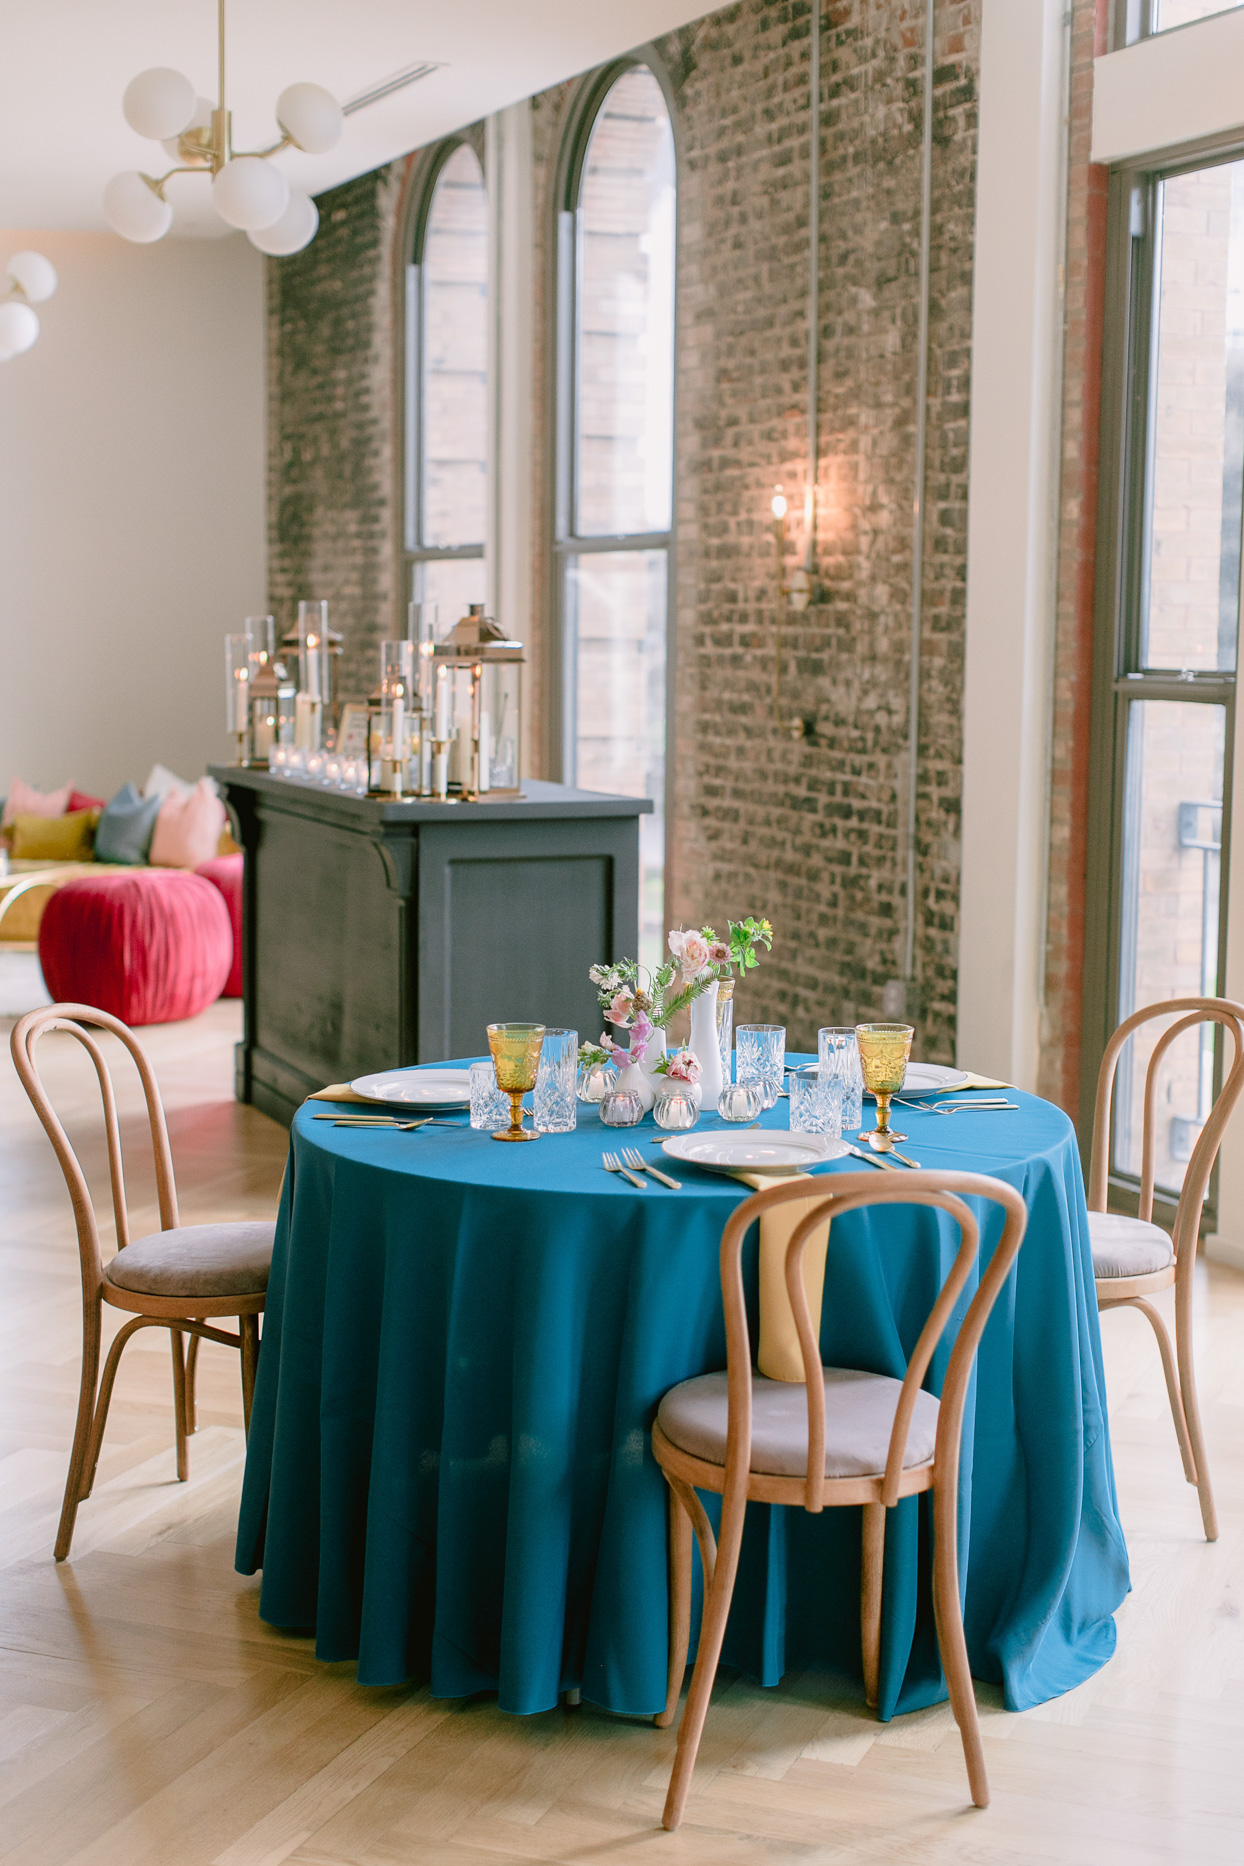 round table with teal cloth and floral decorations